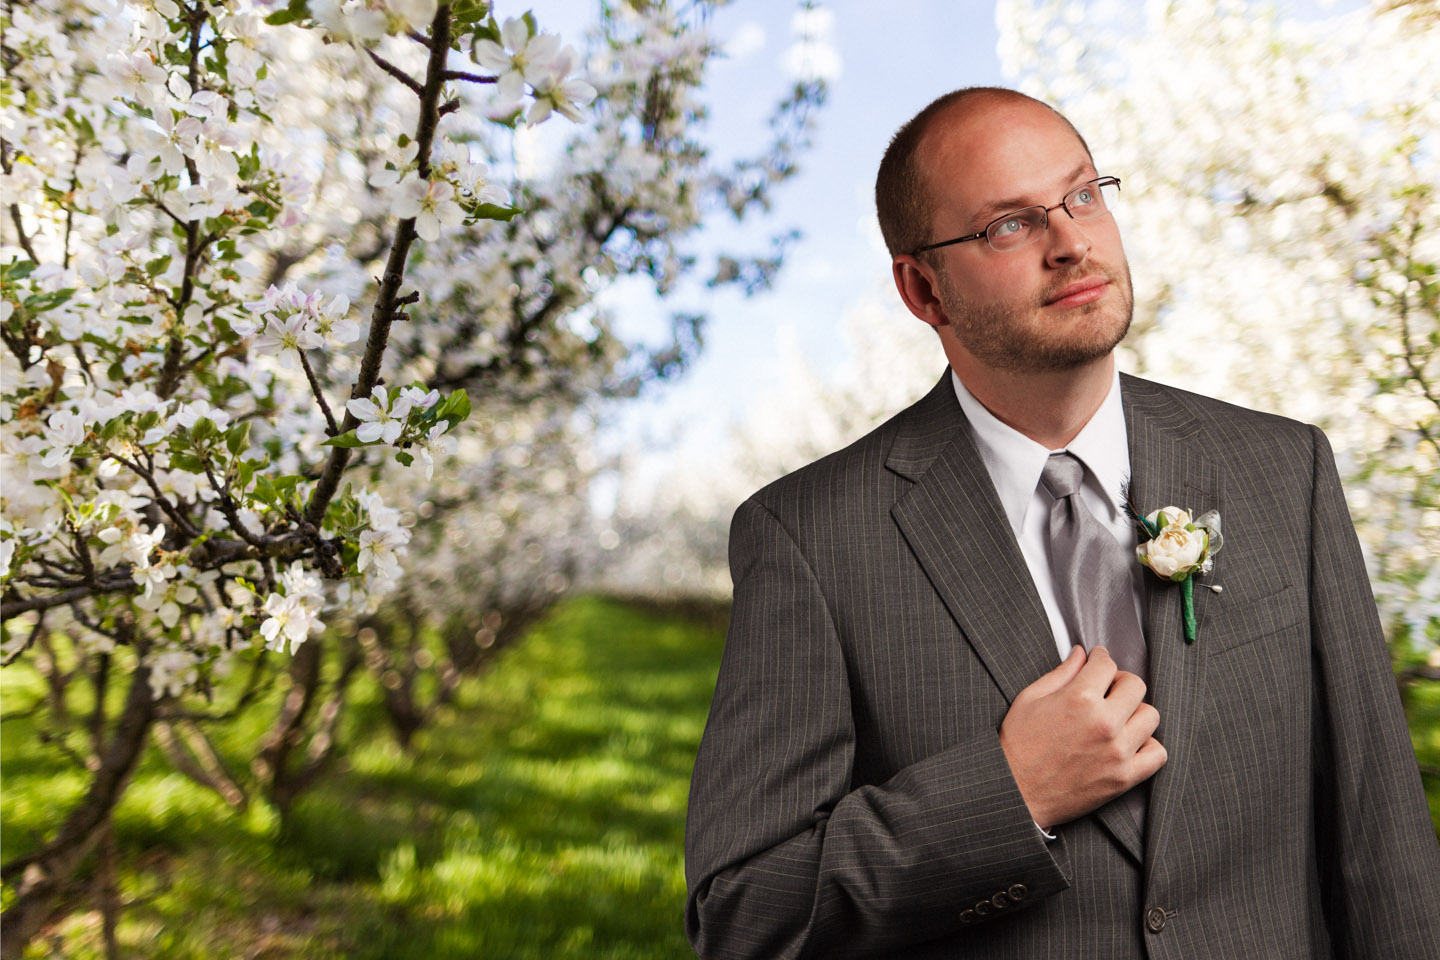 A Groom surrounded by apple blossoms